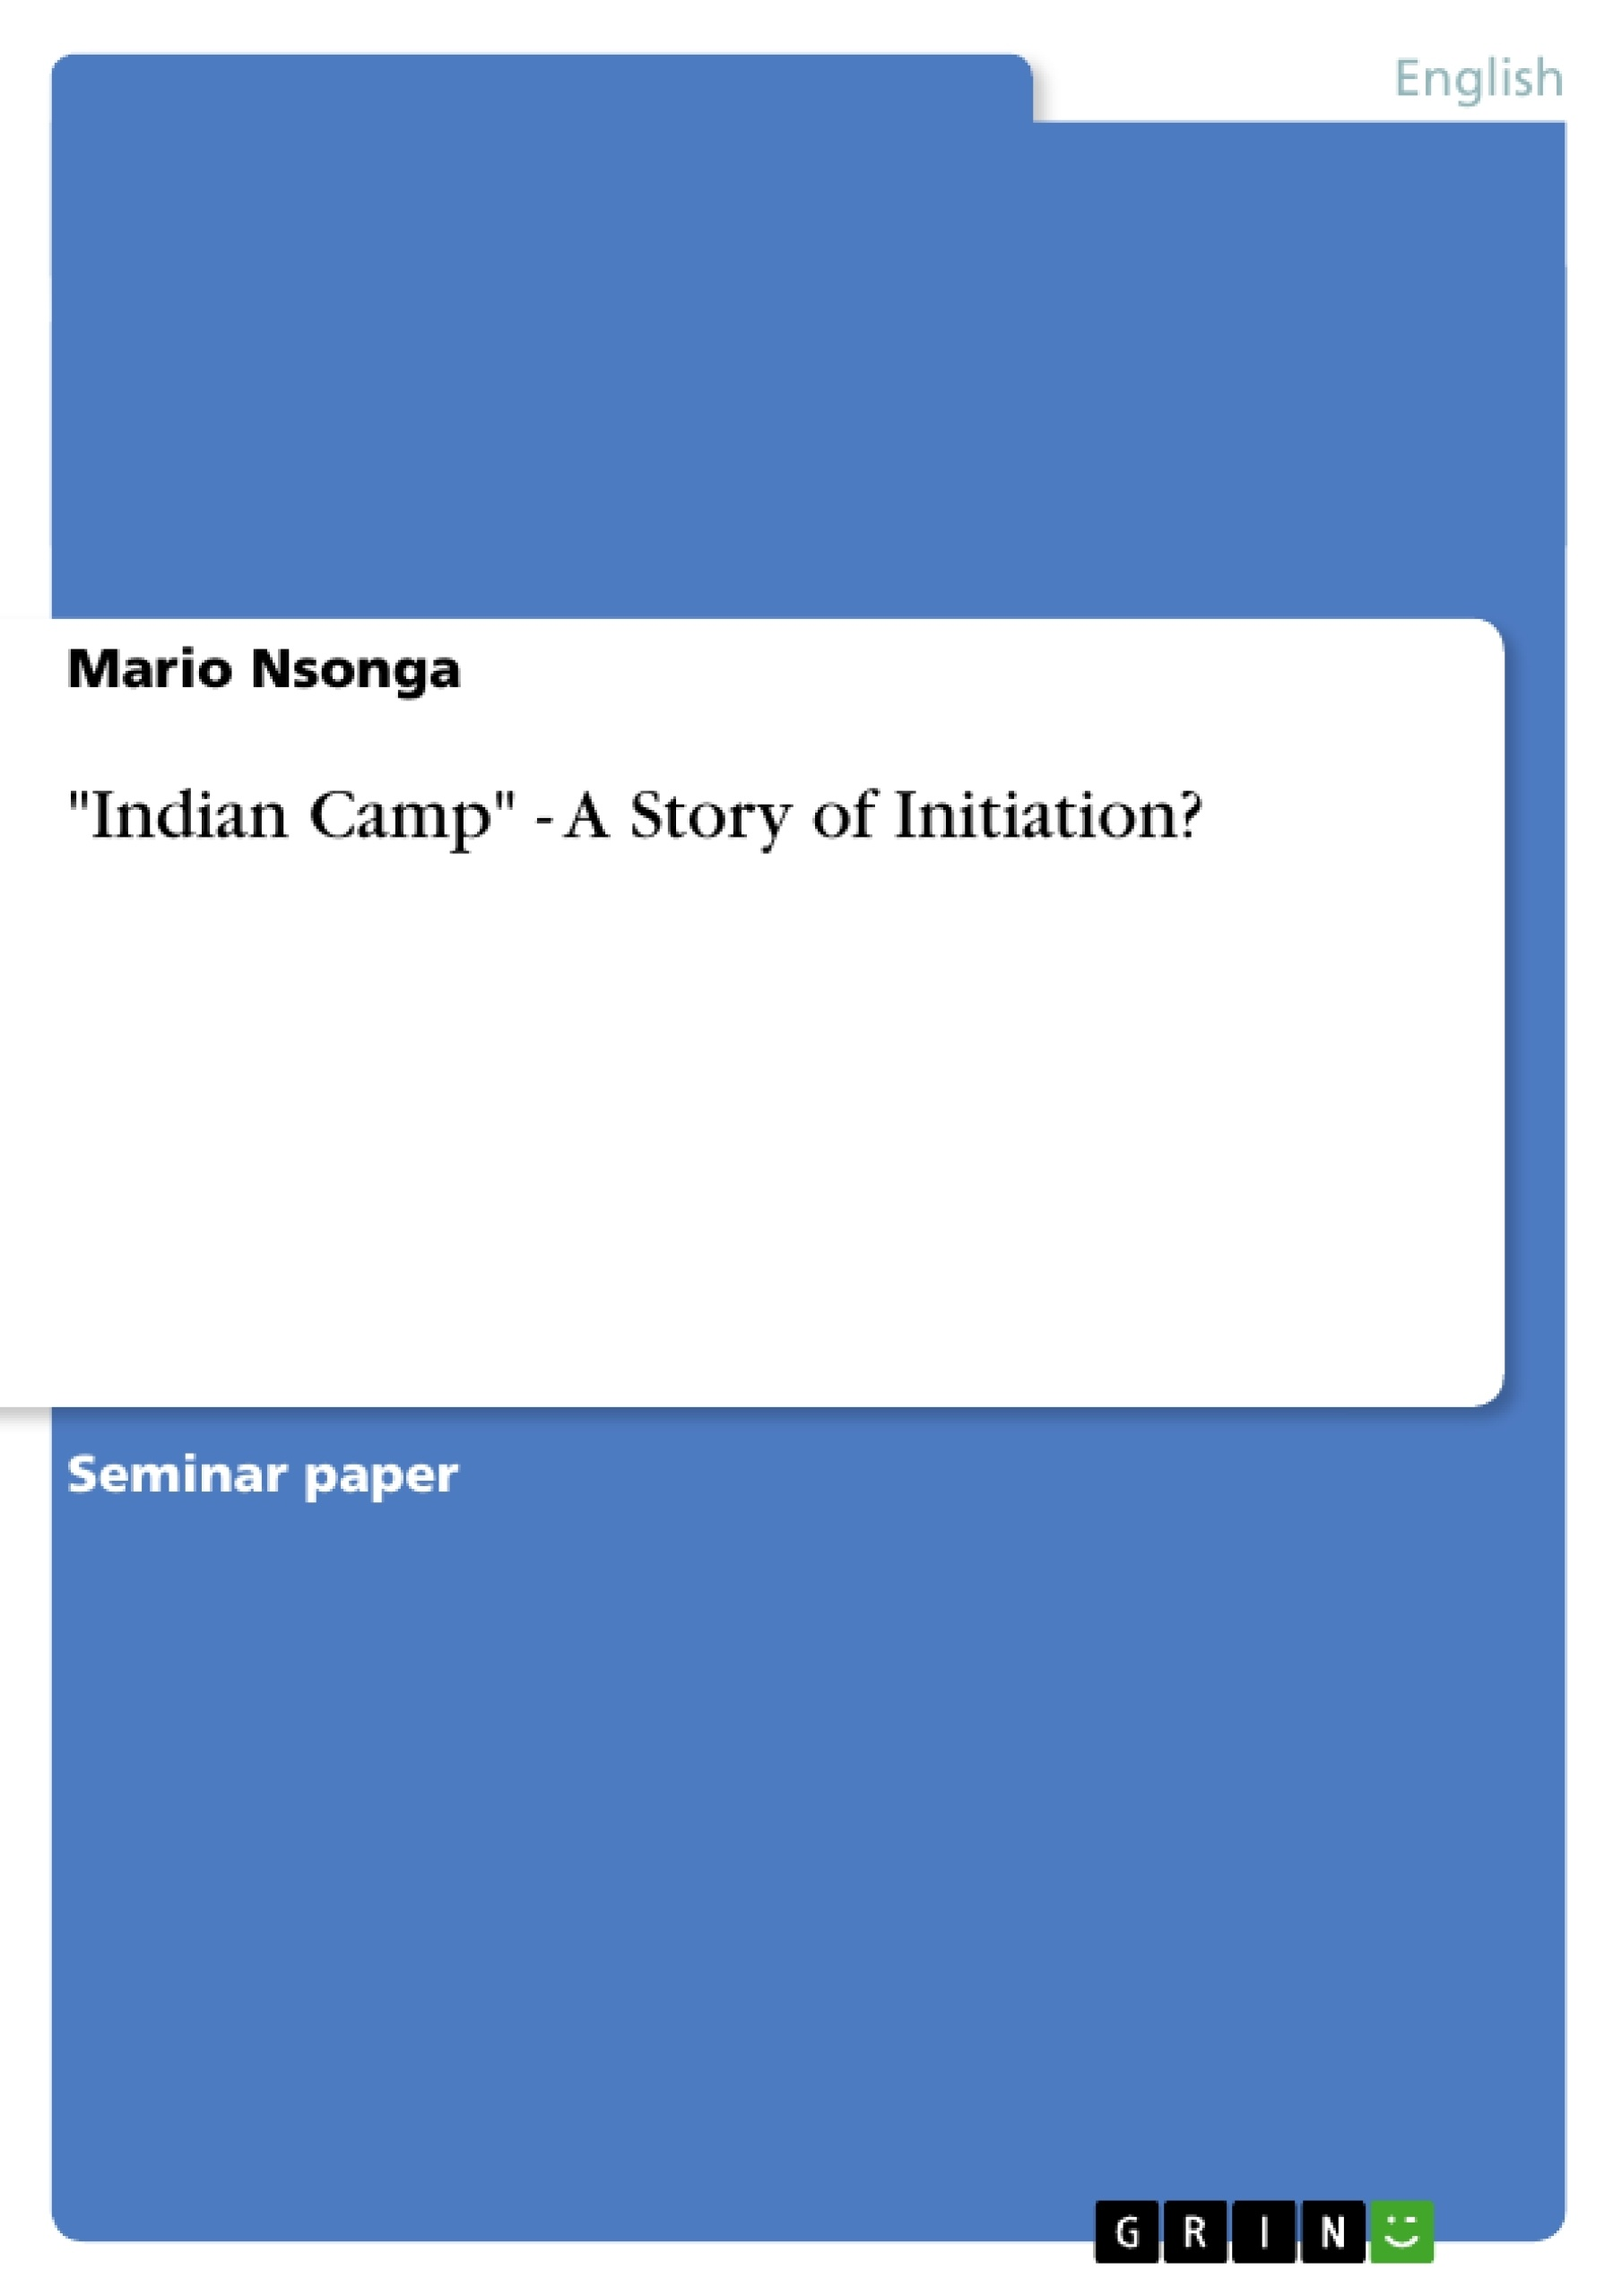 ernest hemingways indian camp analysis A summary of indian camp in ernest hemingway's in our literary analysis father replies that they are going to the indian camp because an indian woman is.